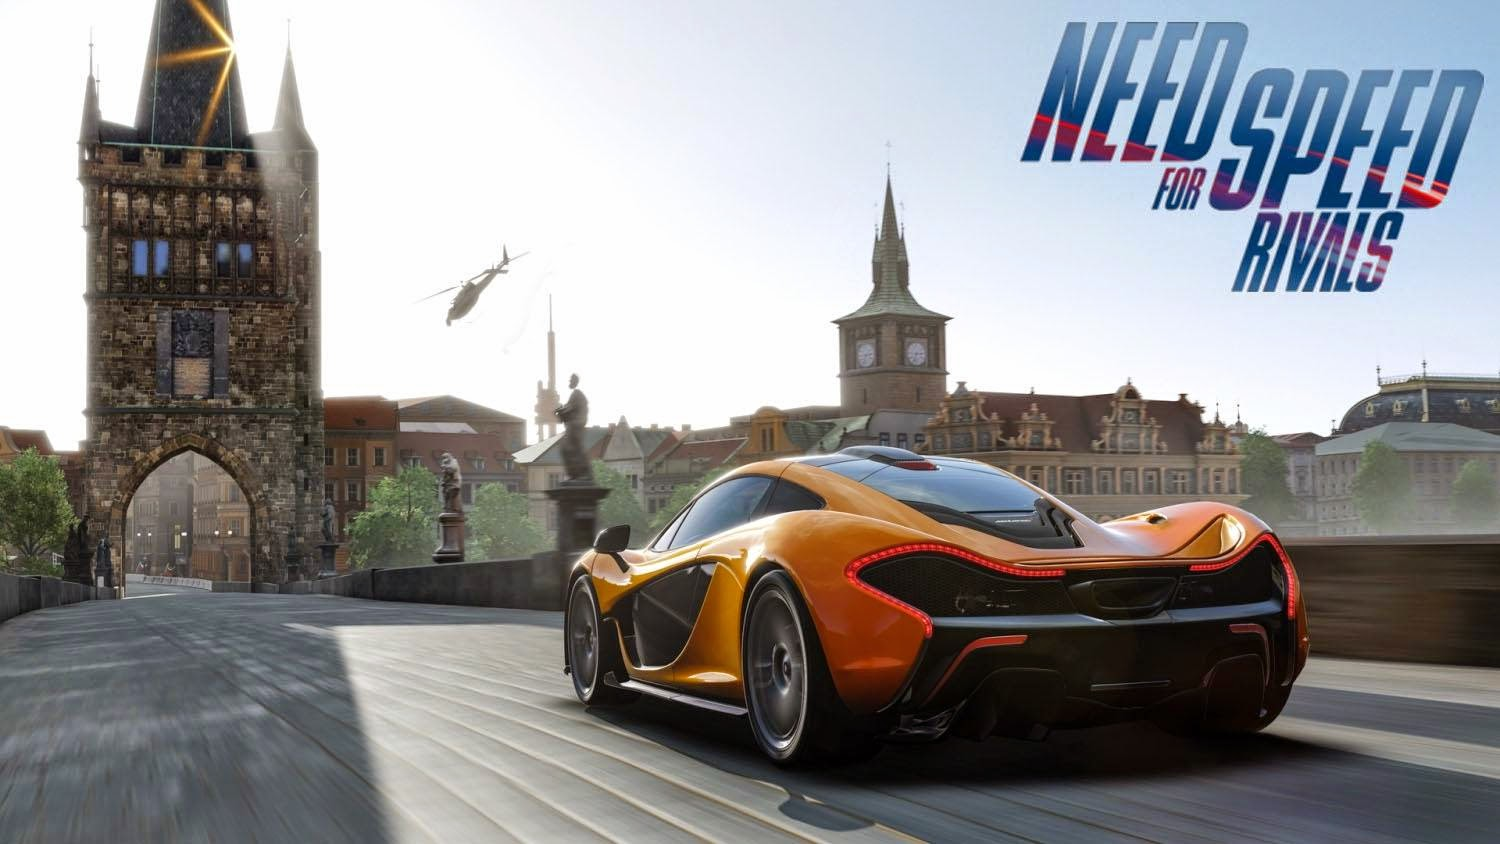 need_for_speed_(nfs)_rivals_full_pc_game_direct_download_free_single_link_iso